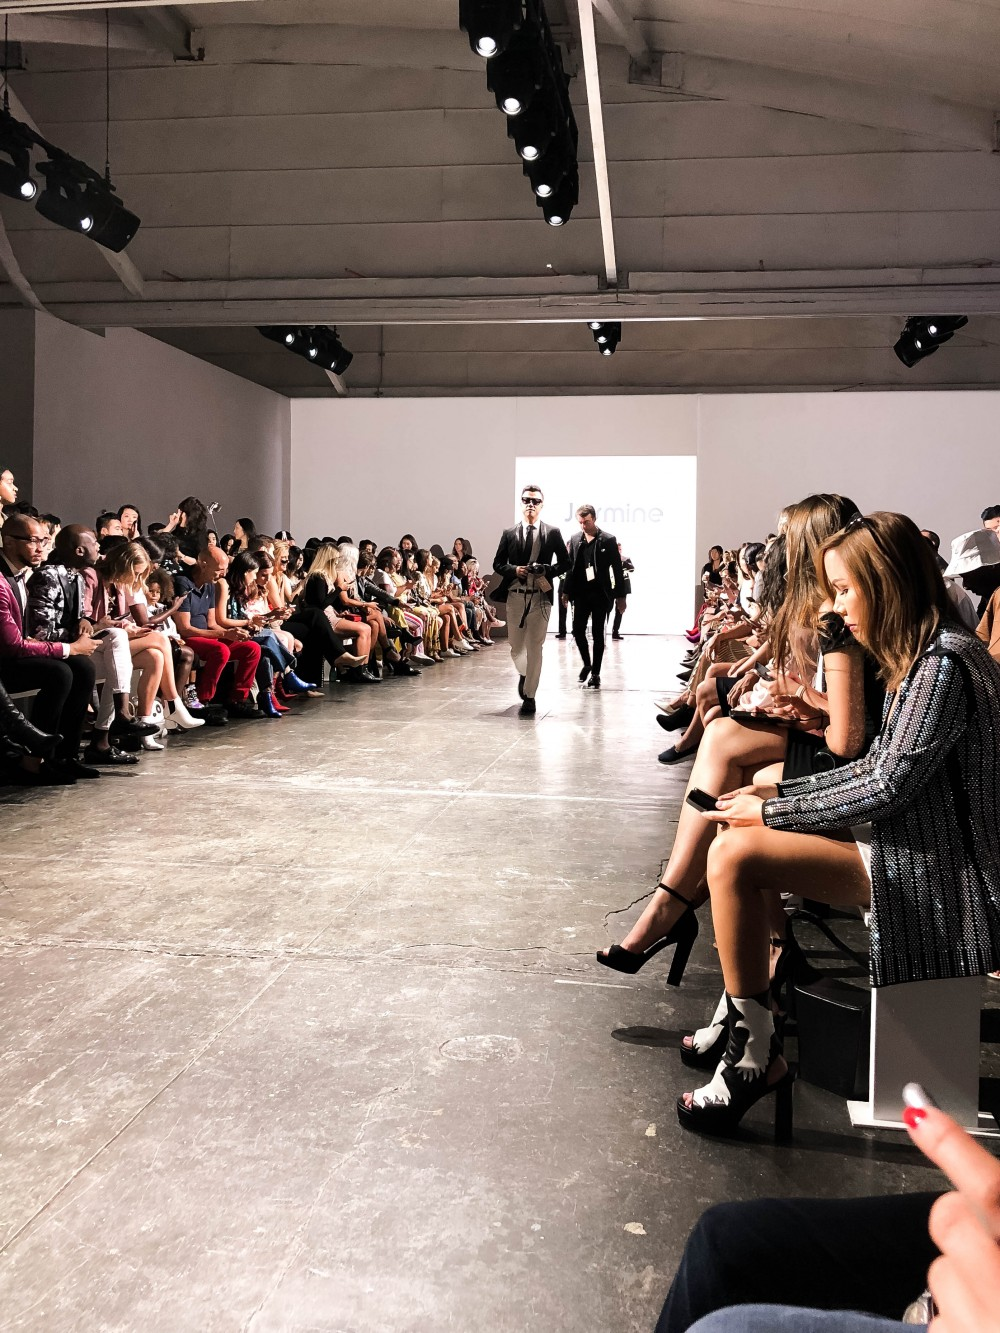 NYFW Etiquette The Do's & Don'ts of Attending NYFW. Click on the photo to read the post! | Have Need Want #NYFW #NYFWetiquette